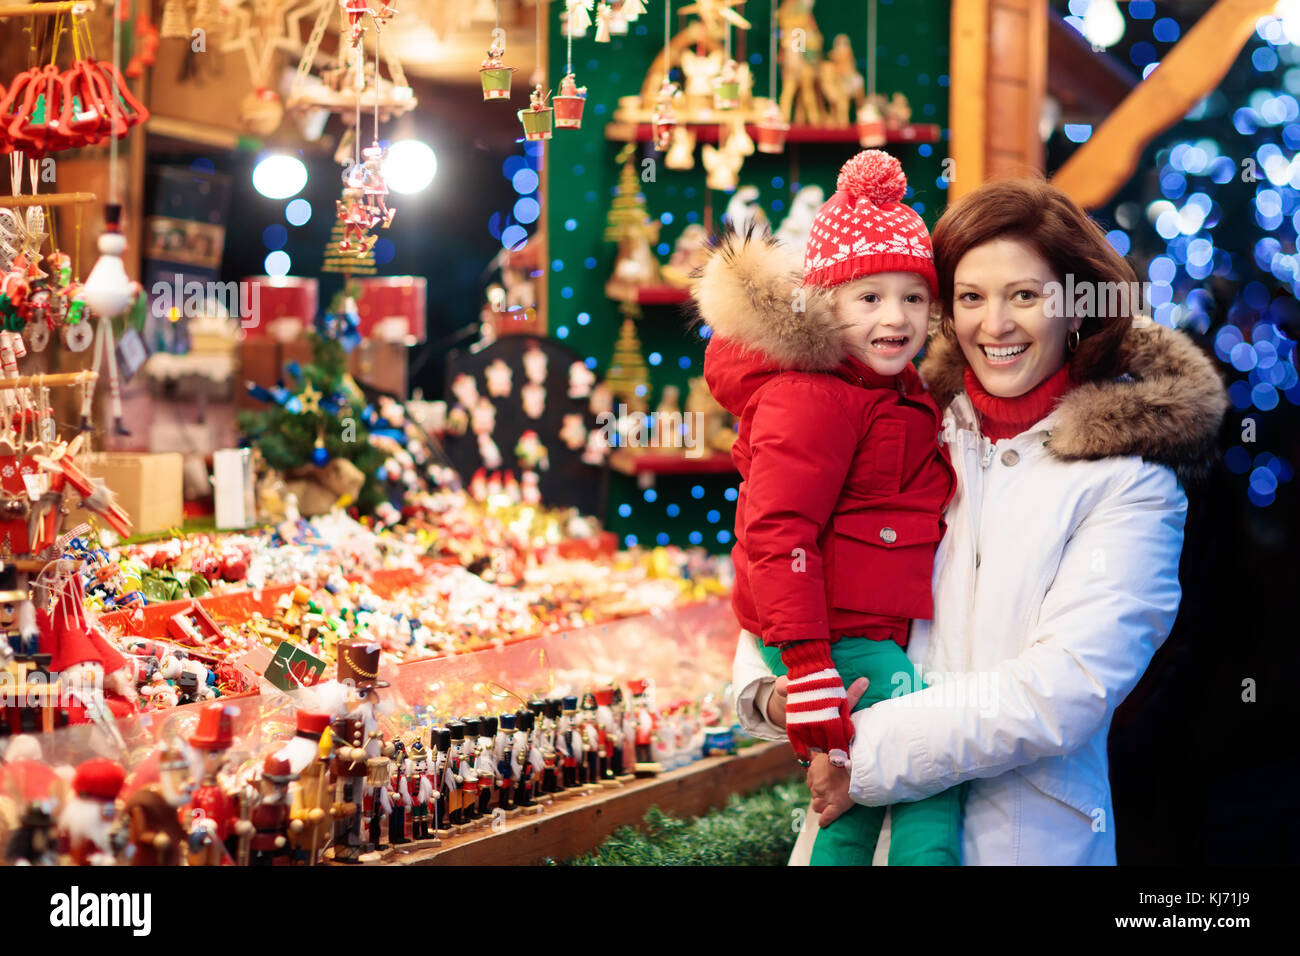 Traditional German Christmas Tree Ornaments Part - 18: Mother And Child In Warm Hat Watching Handmade Glass Christmas Tree  Ornaments At Traditional German Xmas Street Market. Family With Child  Shopping For